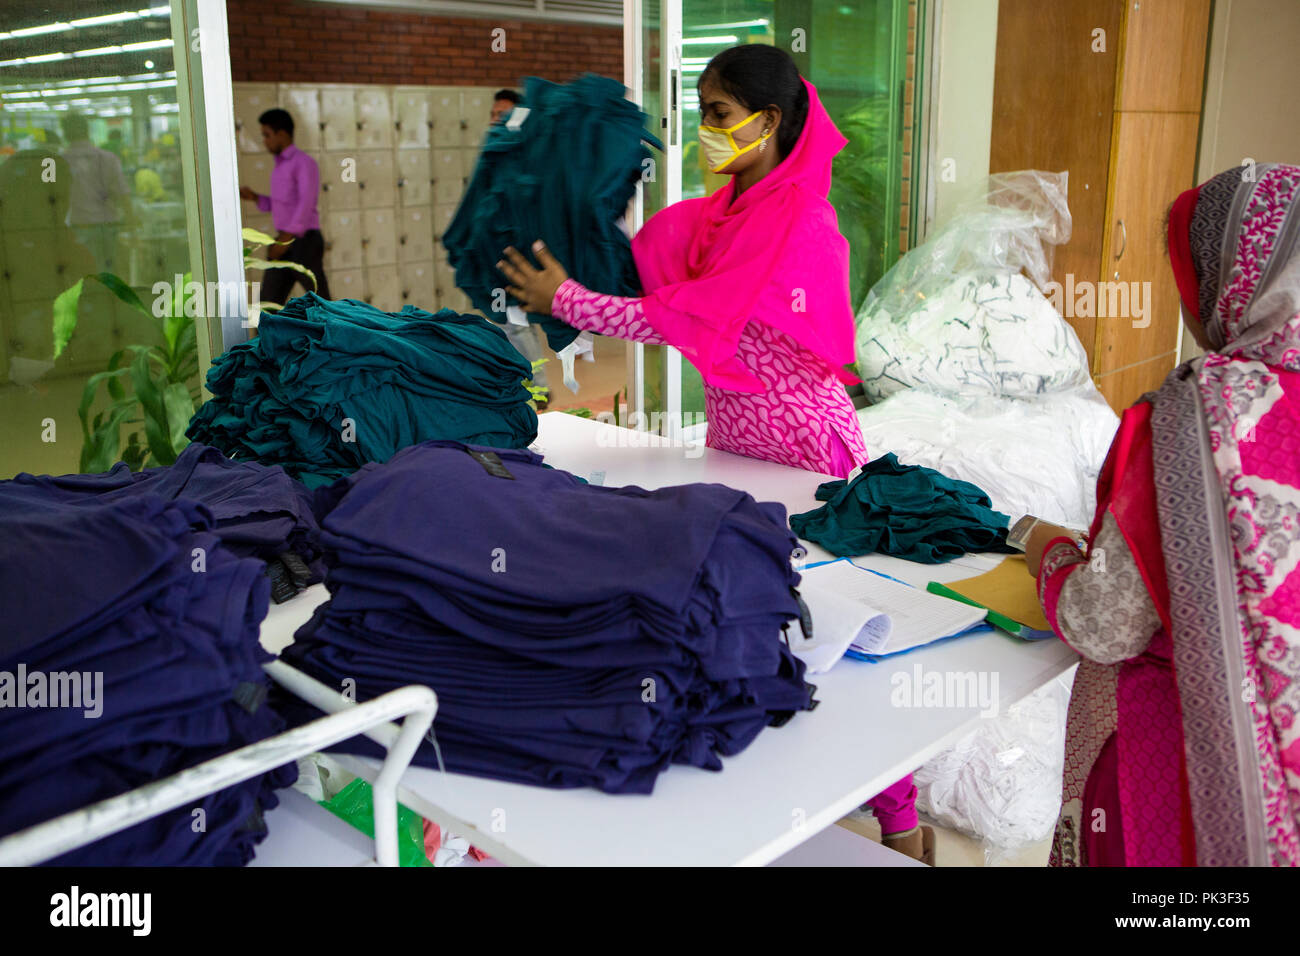 A garment worker sorts through piles of clothes inside a garment factory in Bangladesh. - Stock Image